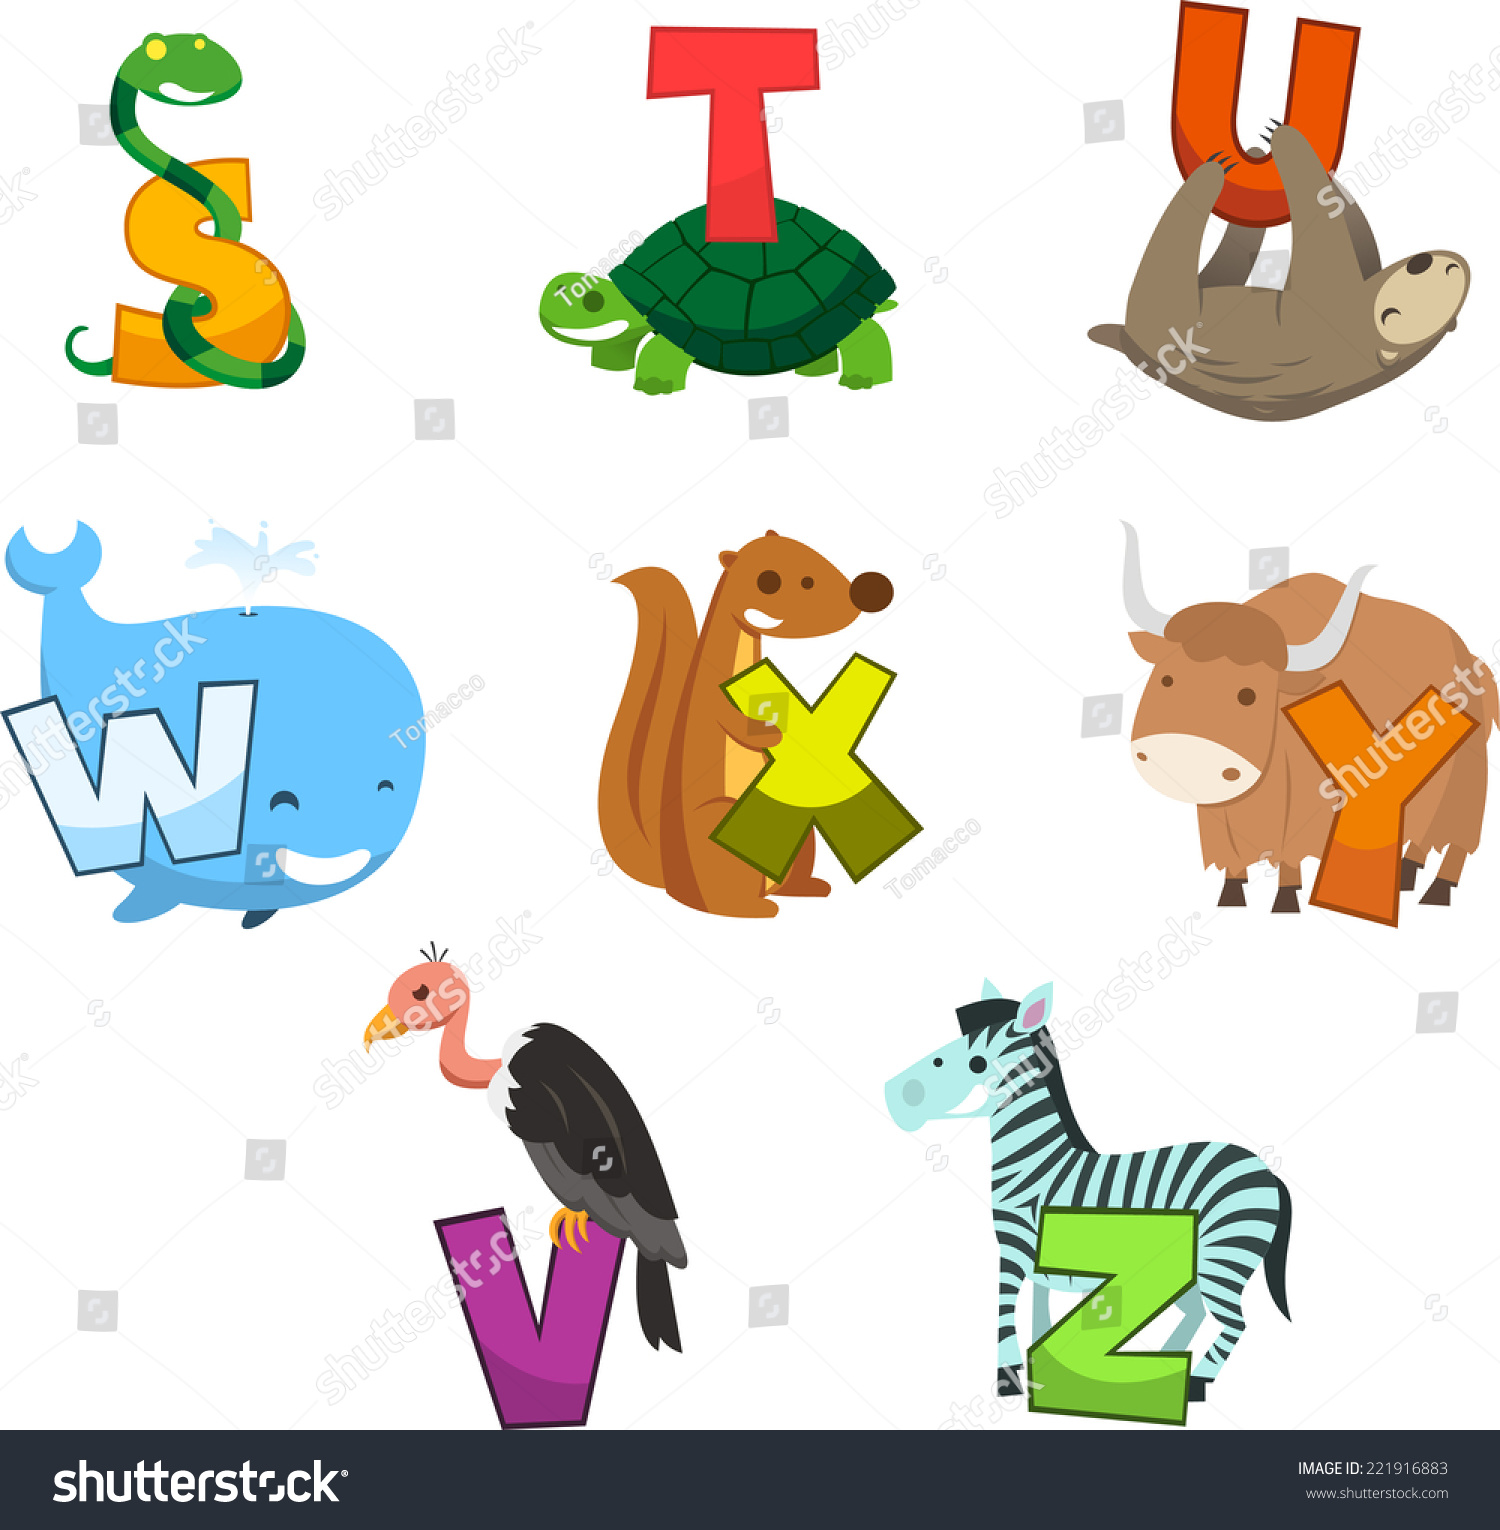 animals that start with the letter u animal alphabet letter snake turtle stock vector 20462 | stock vector animal alphabet with letter snake turtle bear whale squirrel zebra vulture letter s t u w x 221916883